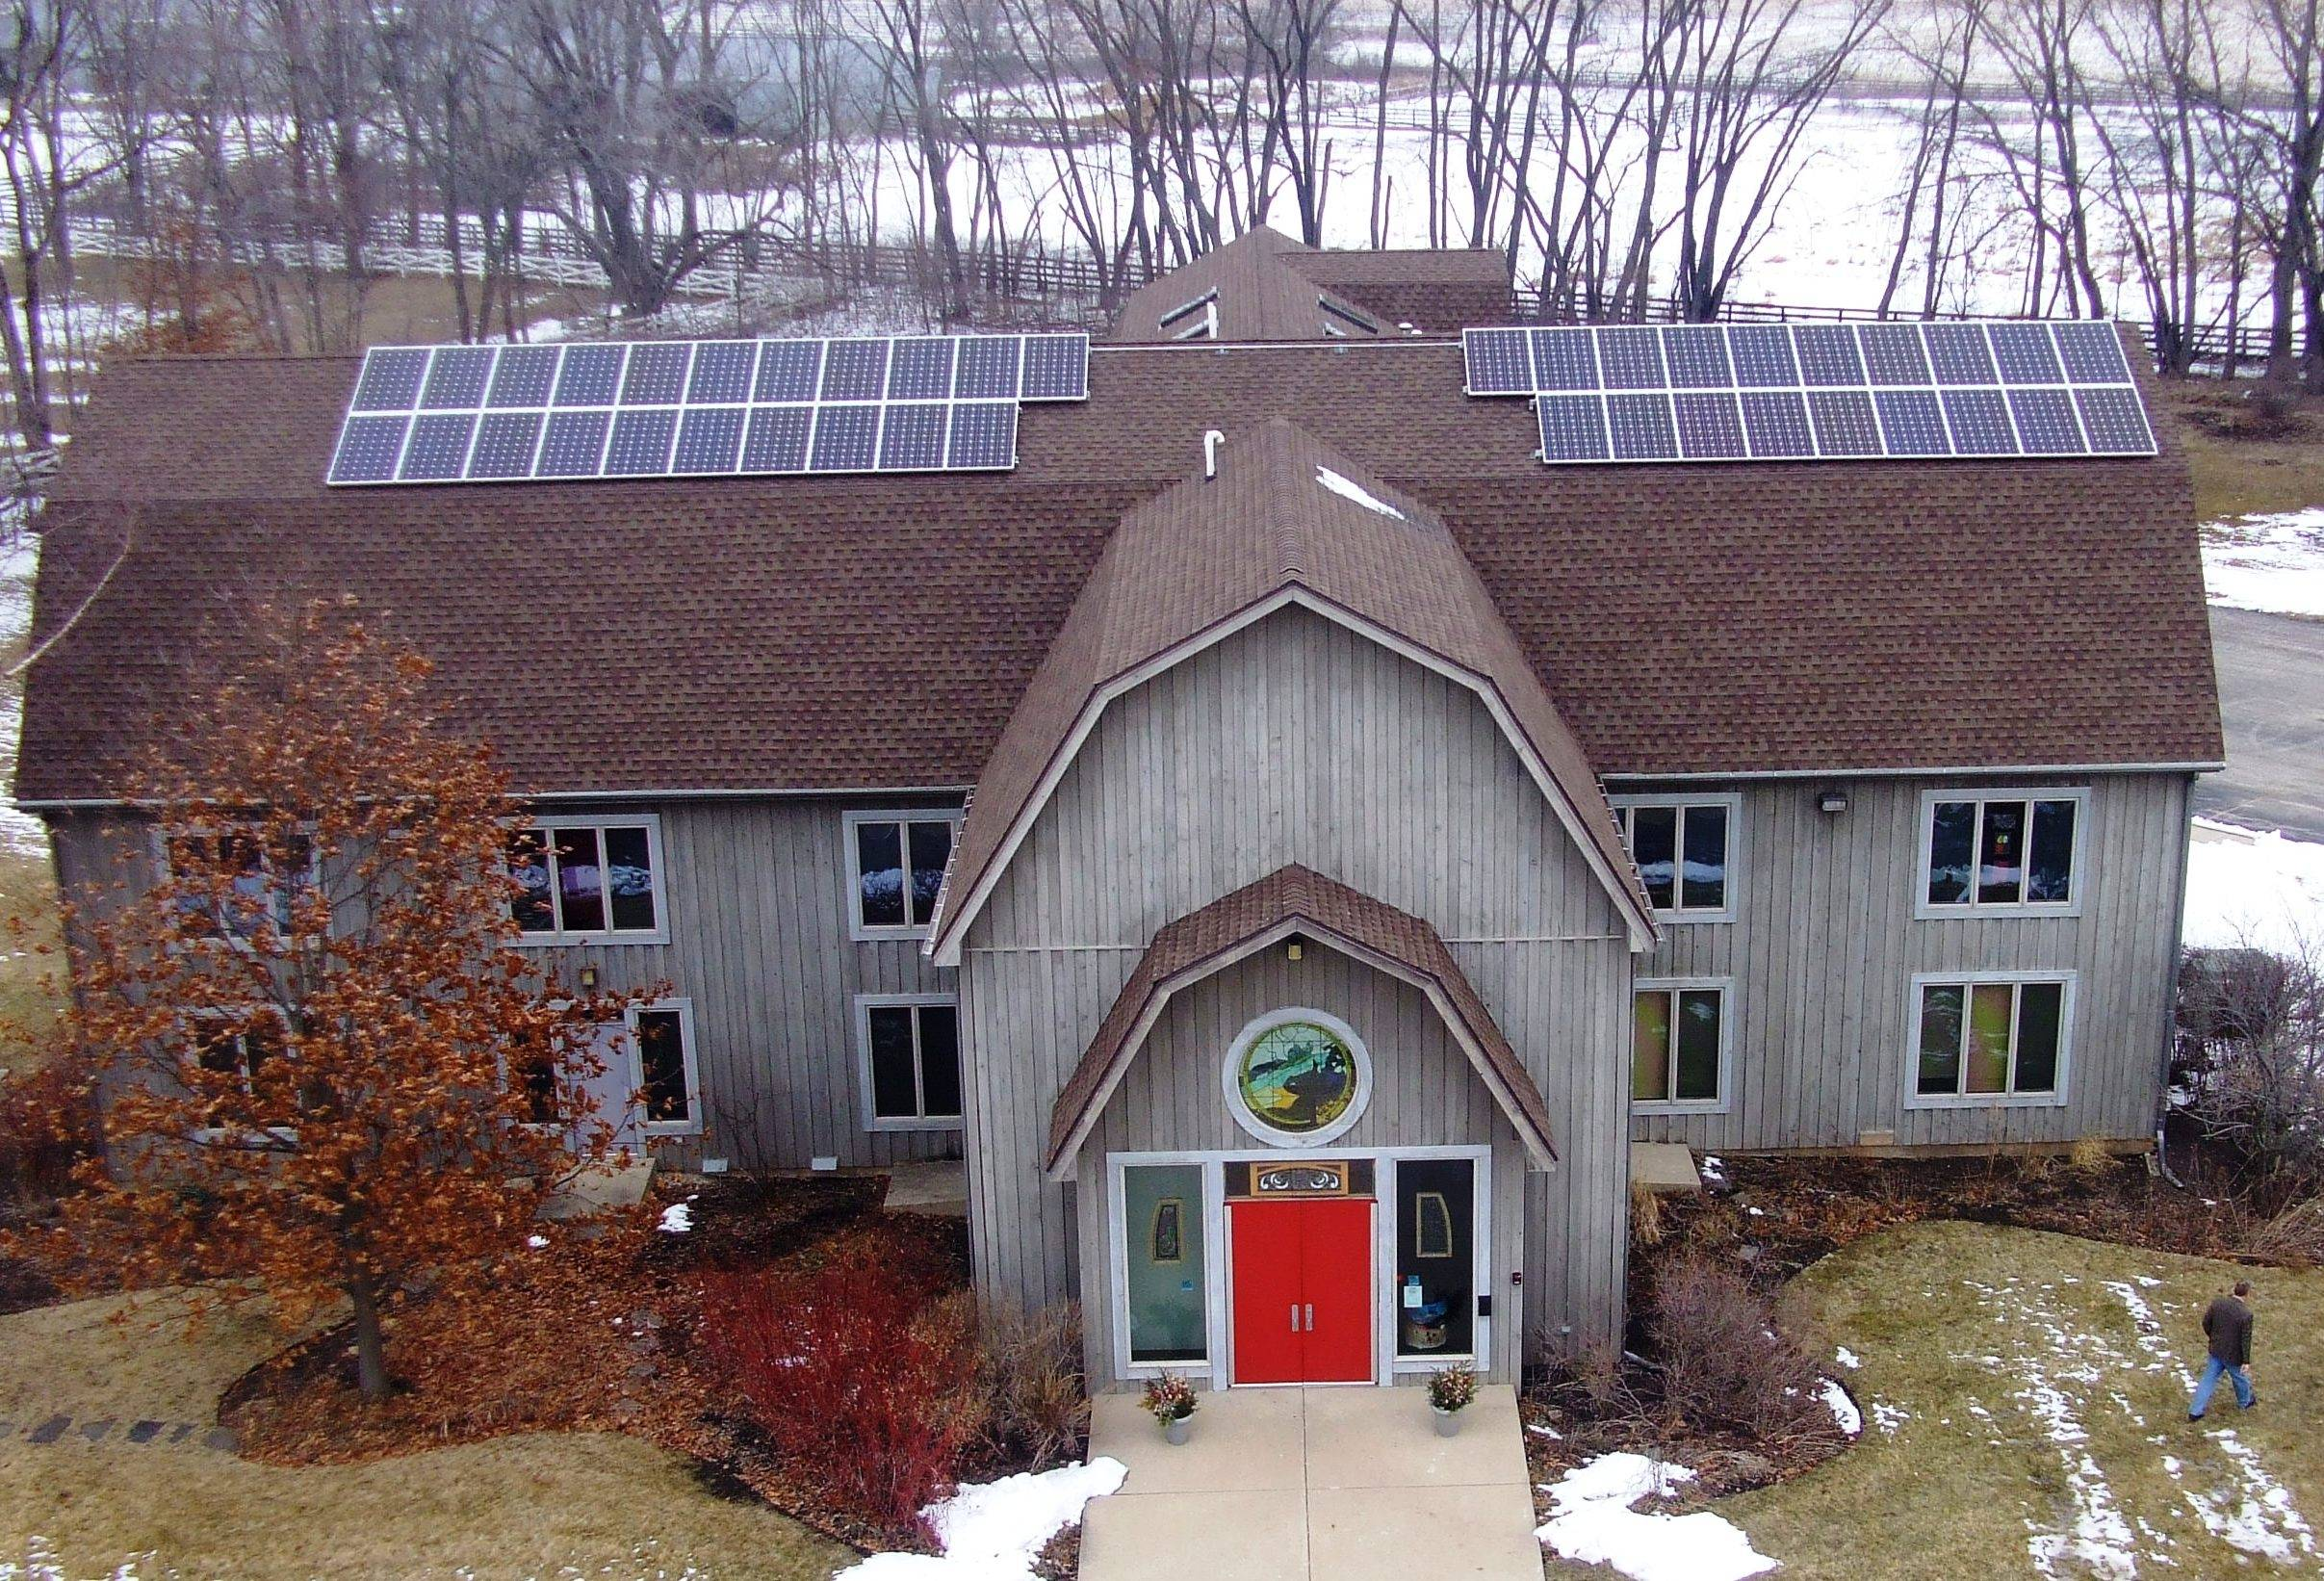 Unitarian Universalist Church of Elgin has photovoltaic solar installation on the roof. It is one of the stops on the Illinois Solar Tour Saturday, Oct. 3.